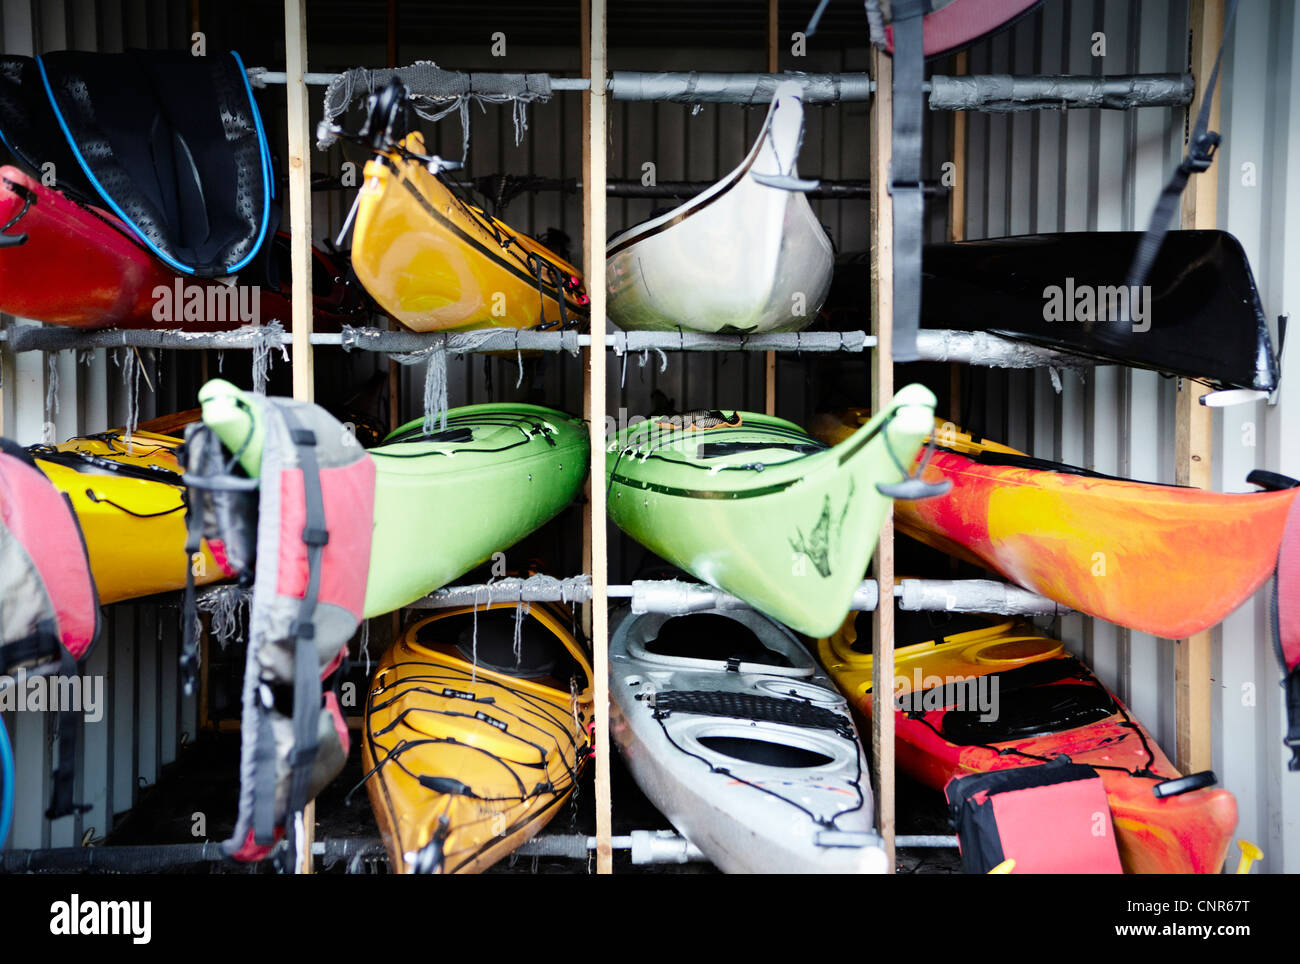 Kayaks stacked in cubes - Stock Image